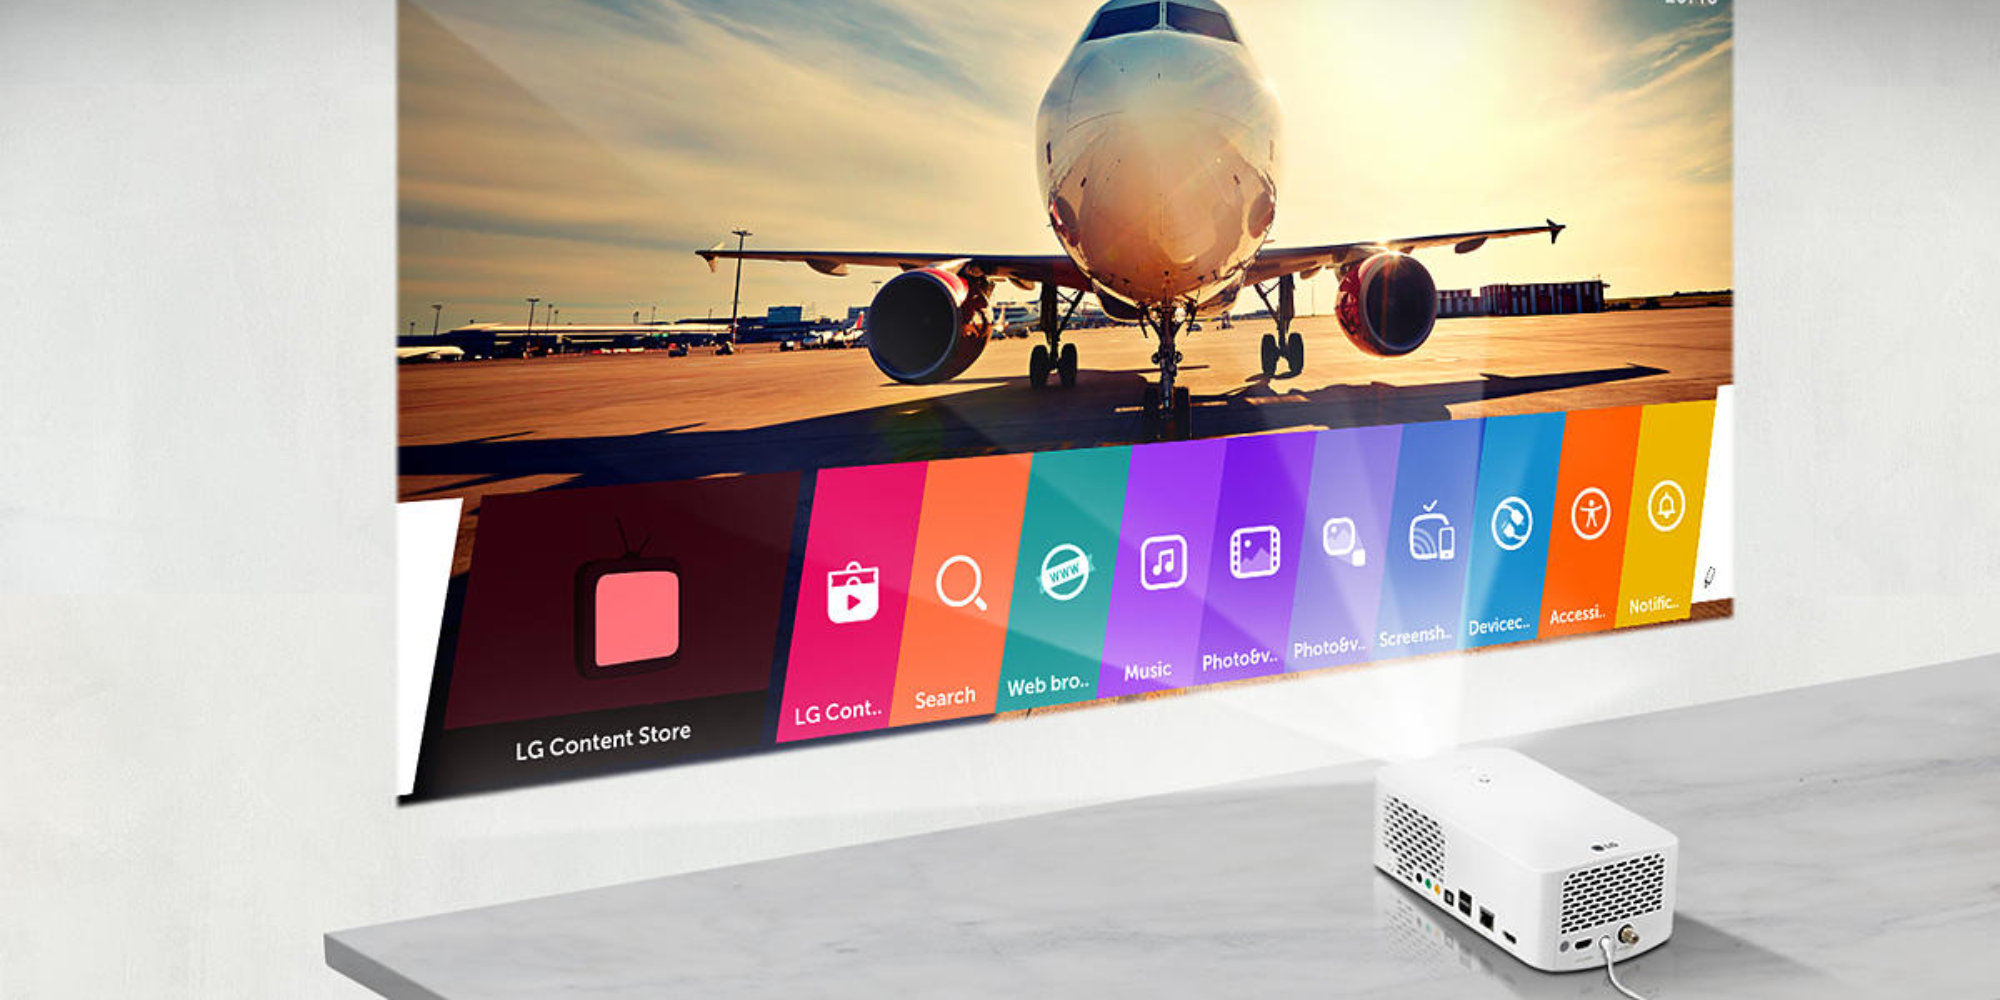 LG's 1080p Smart Projector runs webOS, has Bluetooth sound out, more: $697 (Amazon low)